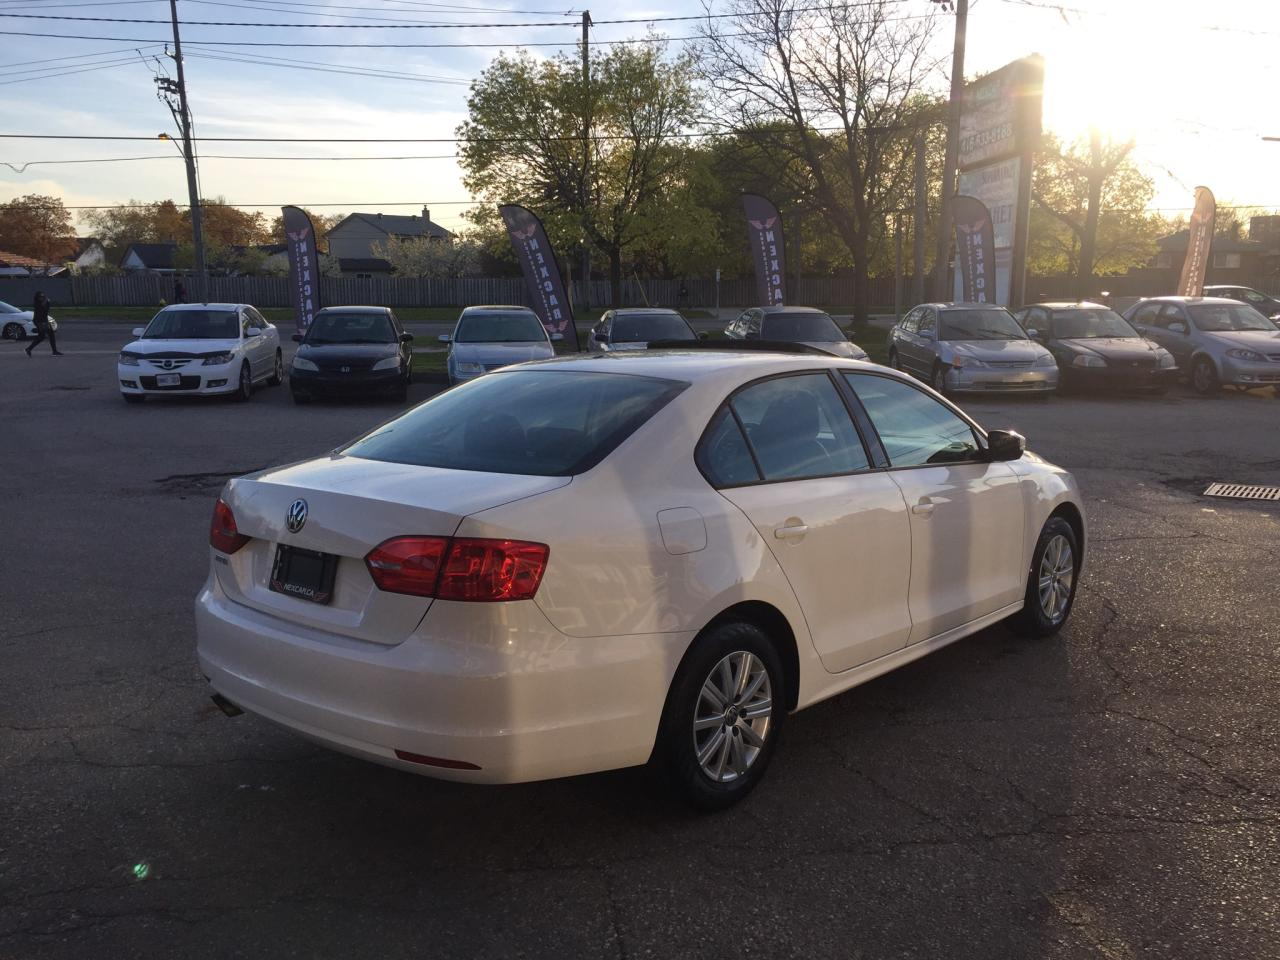 Leased Cars For Sale Toronto